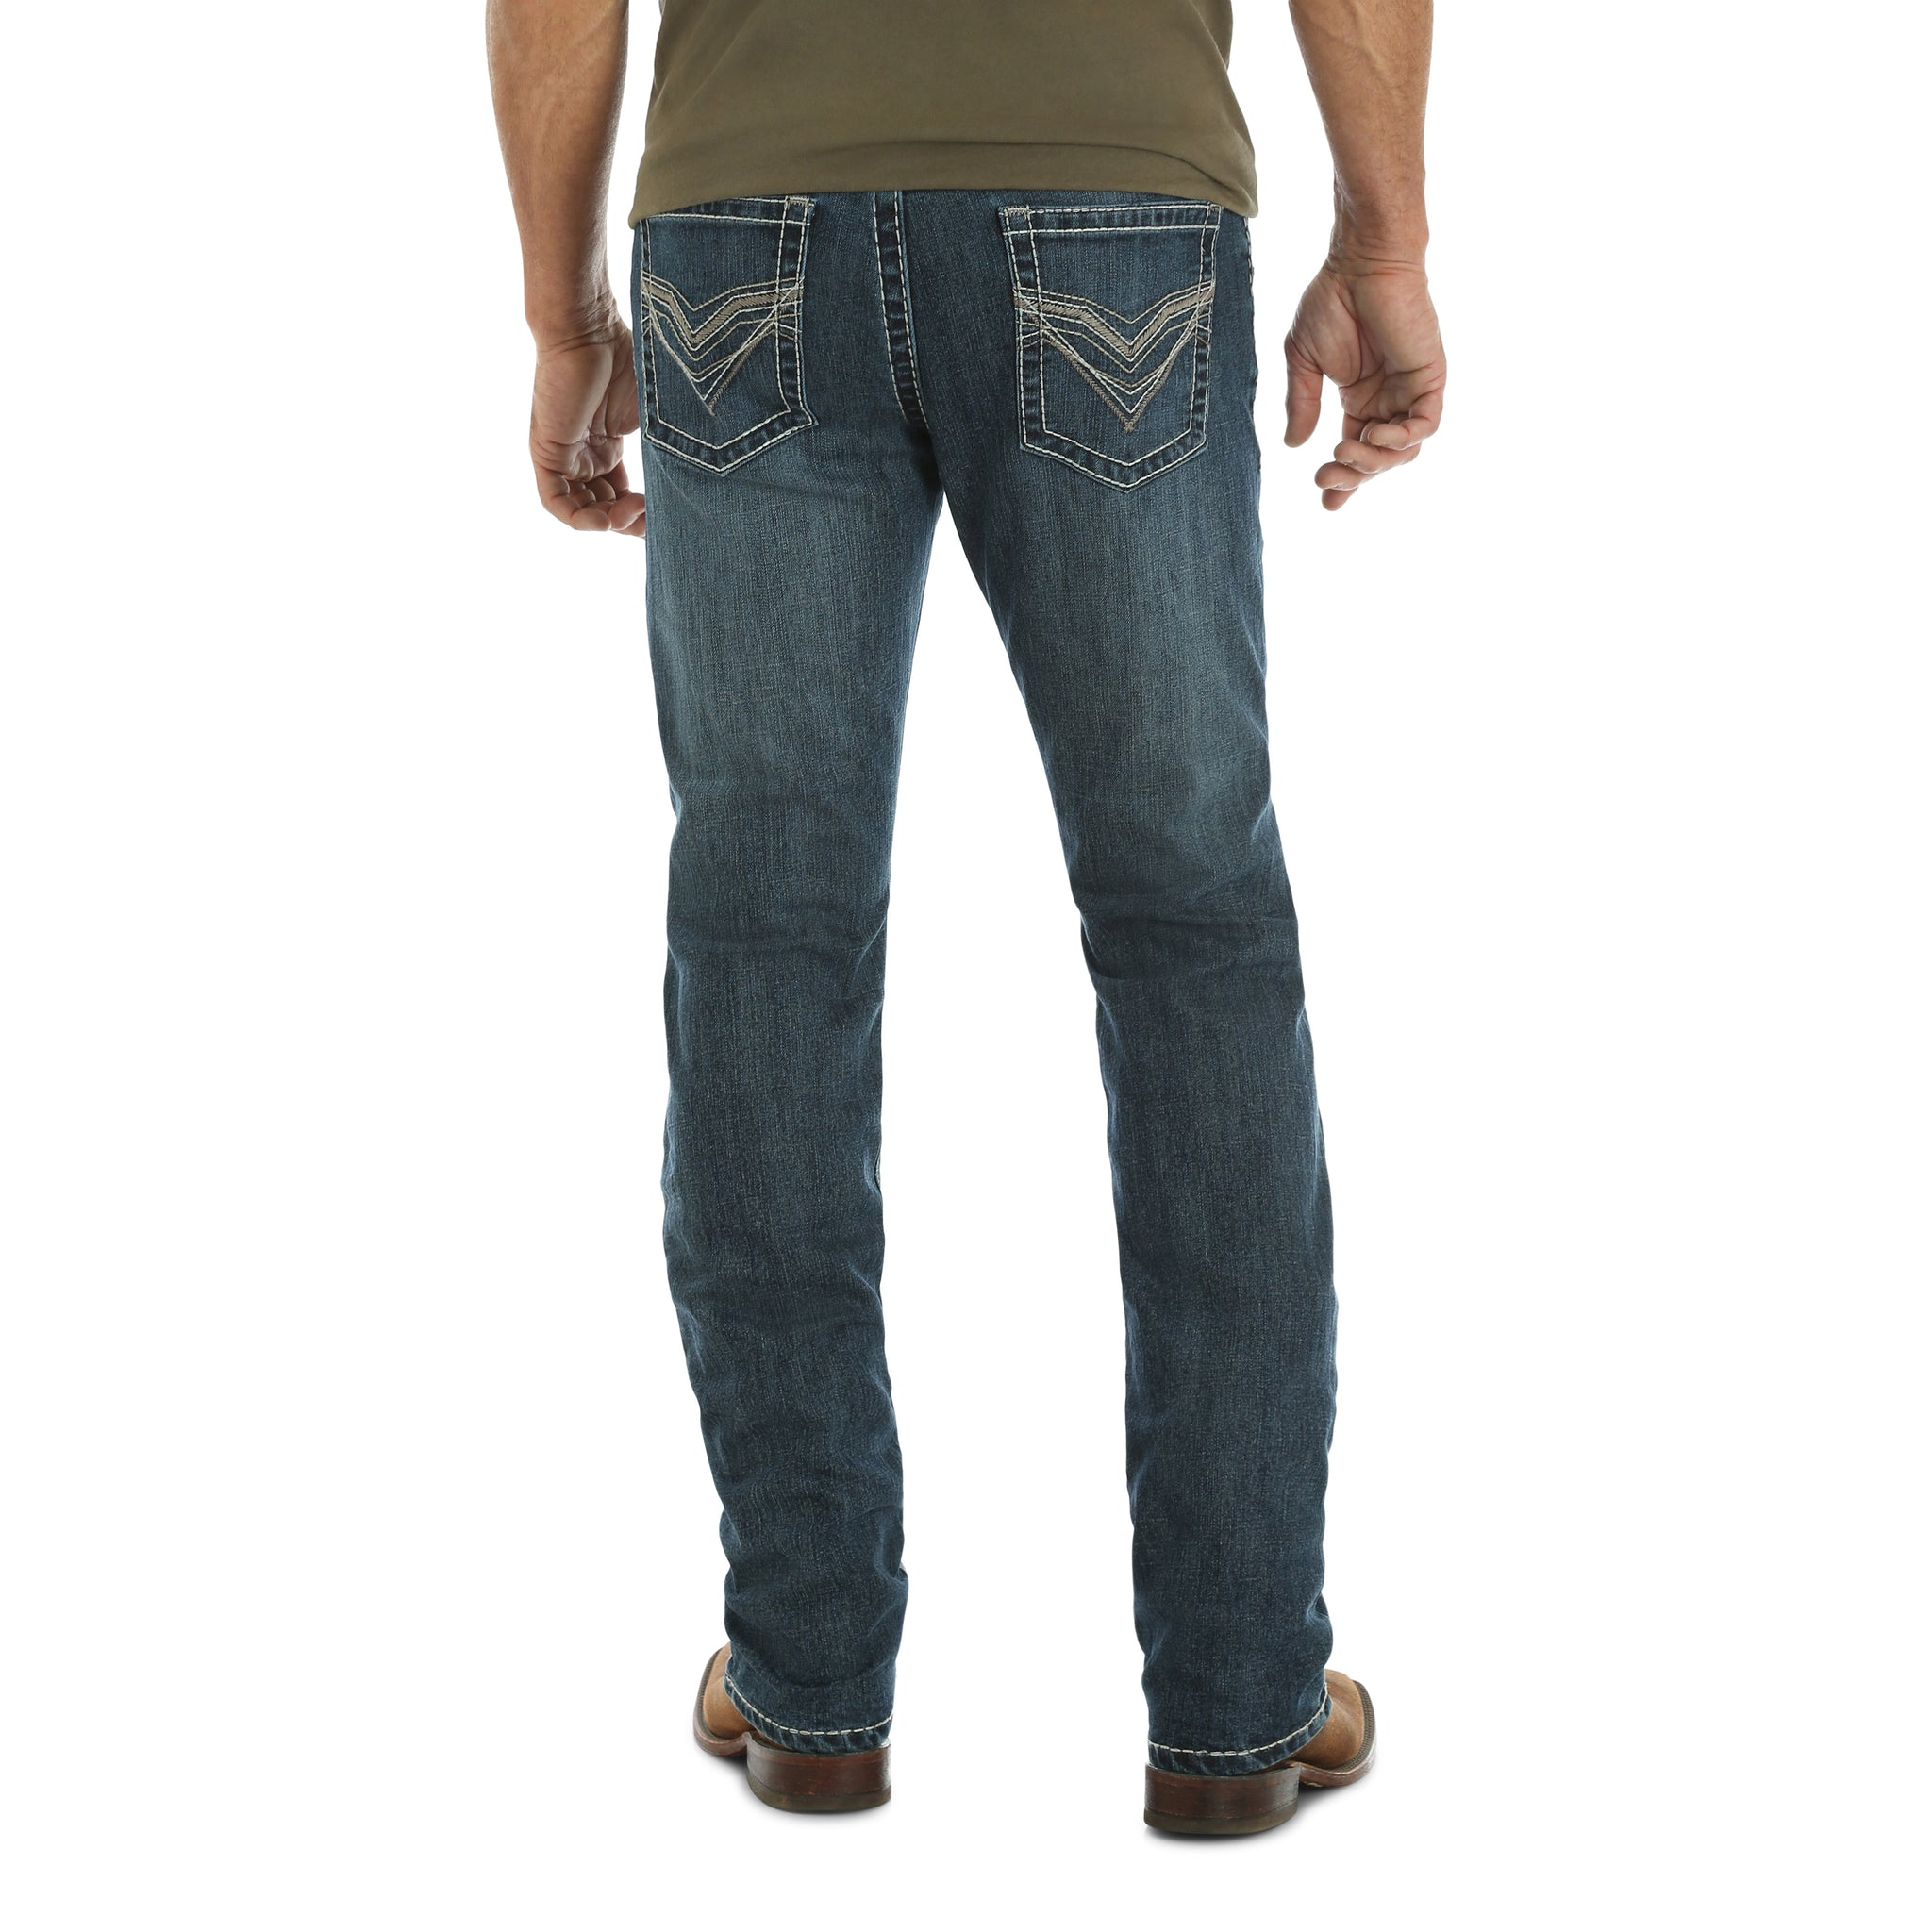 e3fc28a2 Rock 47 Slim Men's Jean by Wrangler – Stone Creek Western Shop